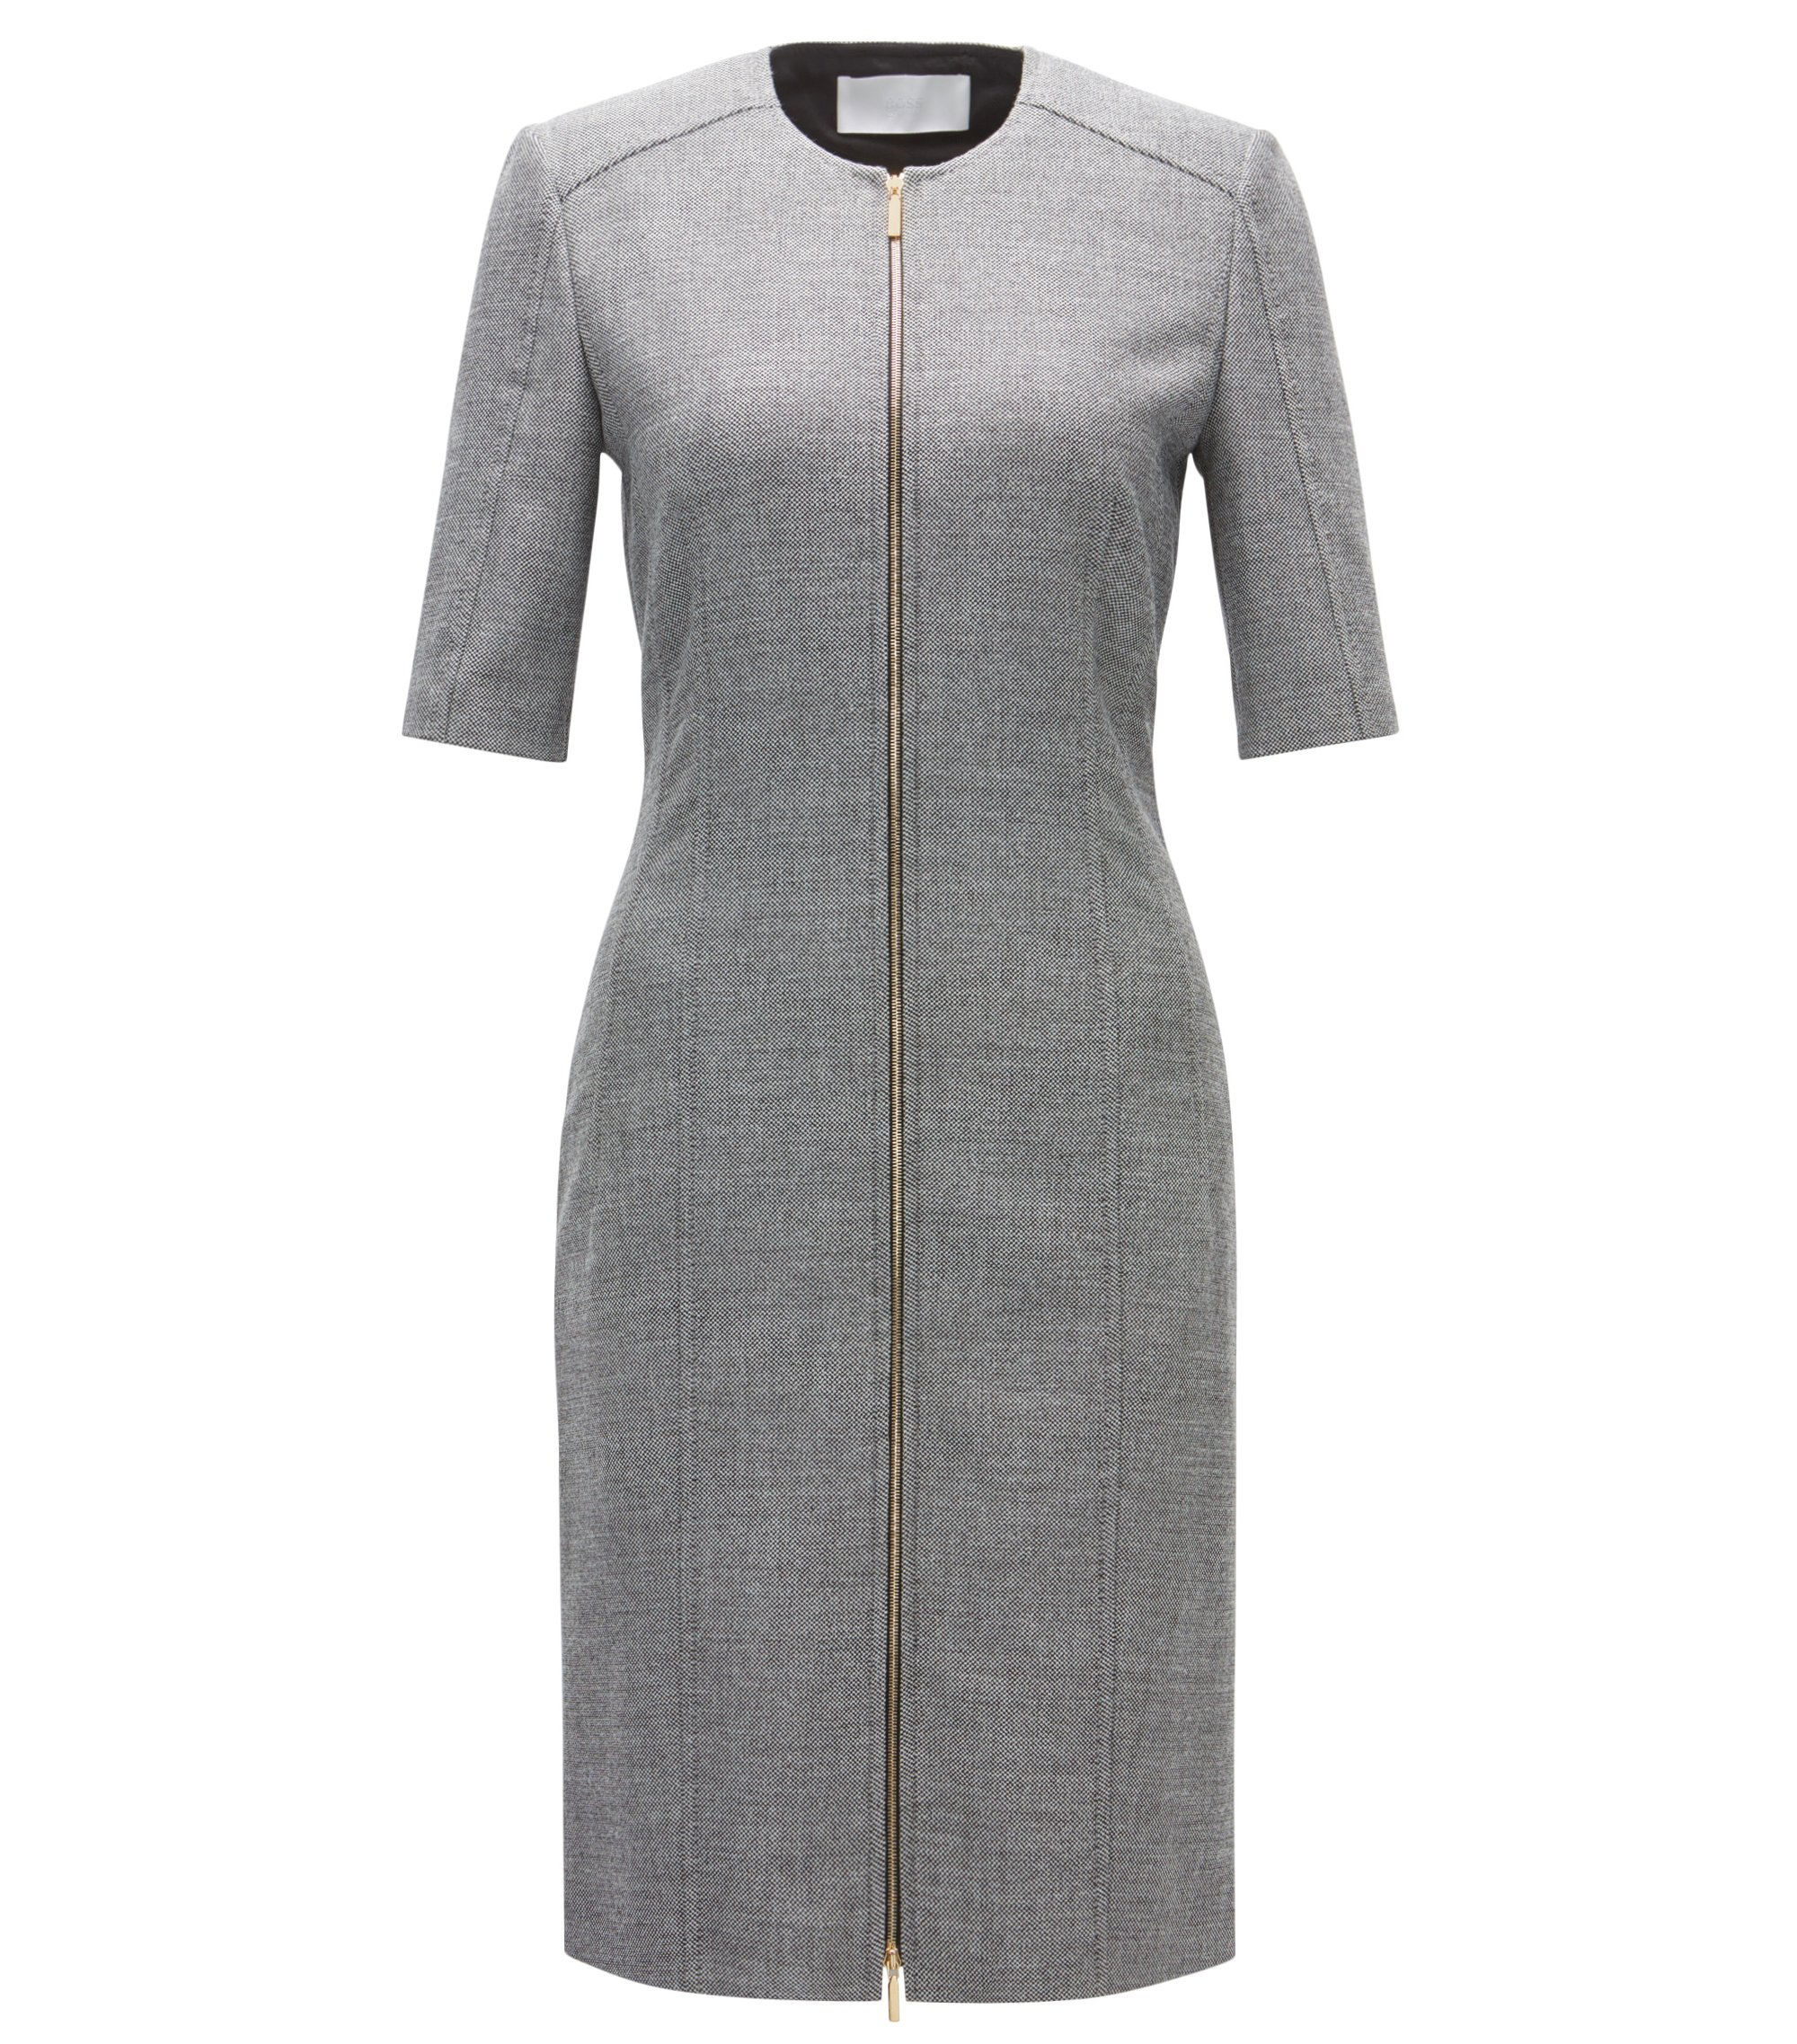 Zipped Sheath Dress | Demirana, Patterned